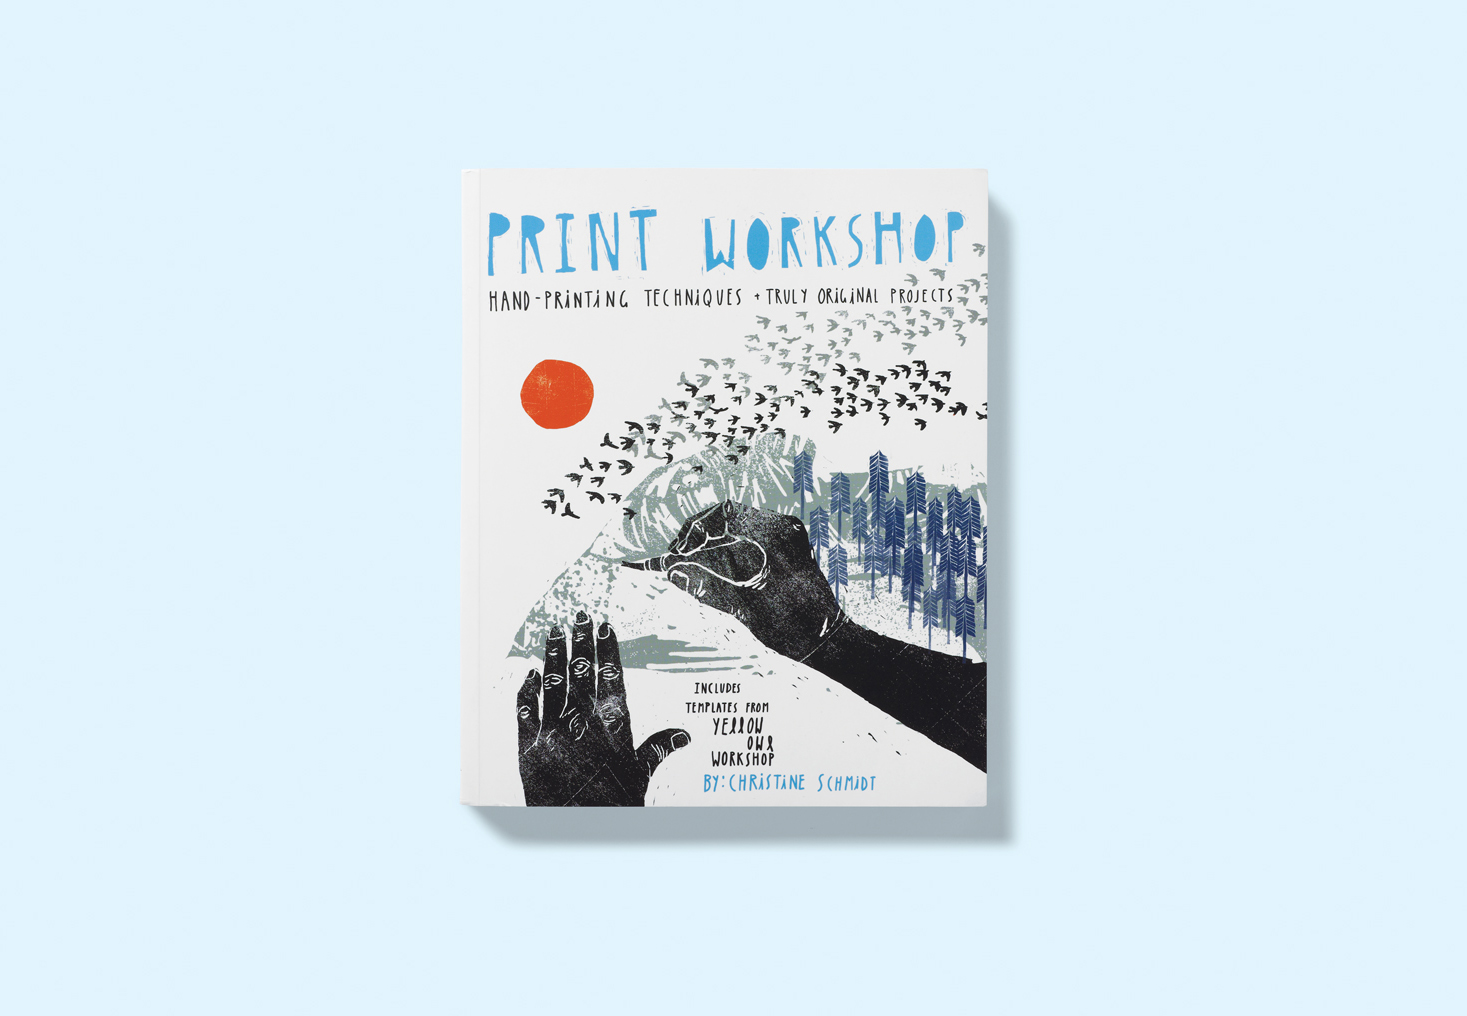 Print Workshop: Hand-Printing Techniques and Truly Original Projects by Christine Schmidt